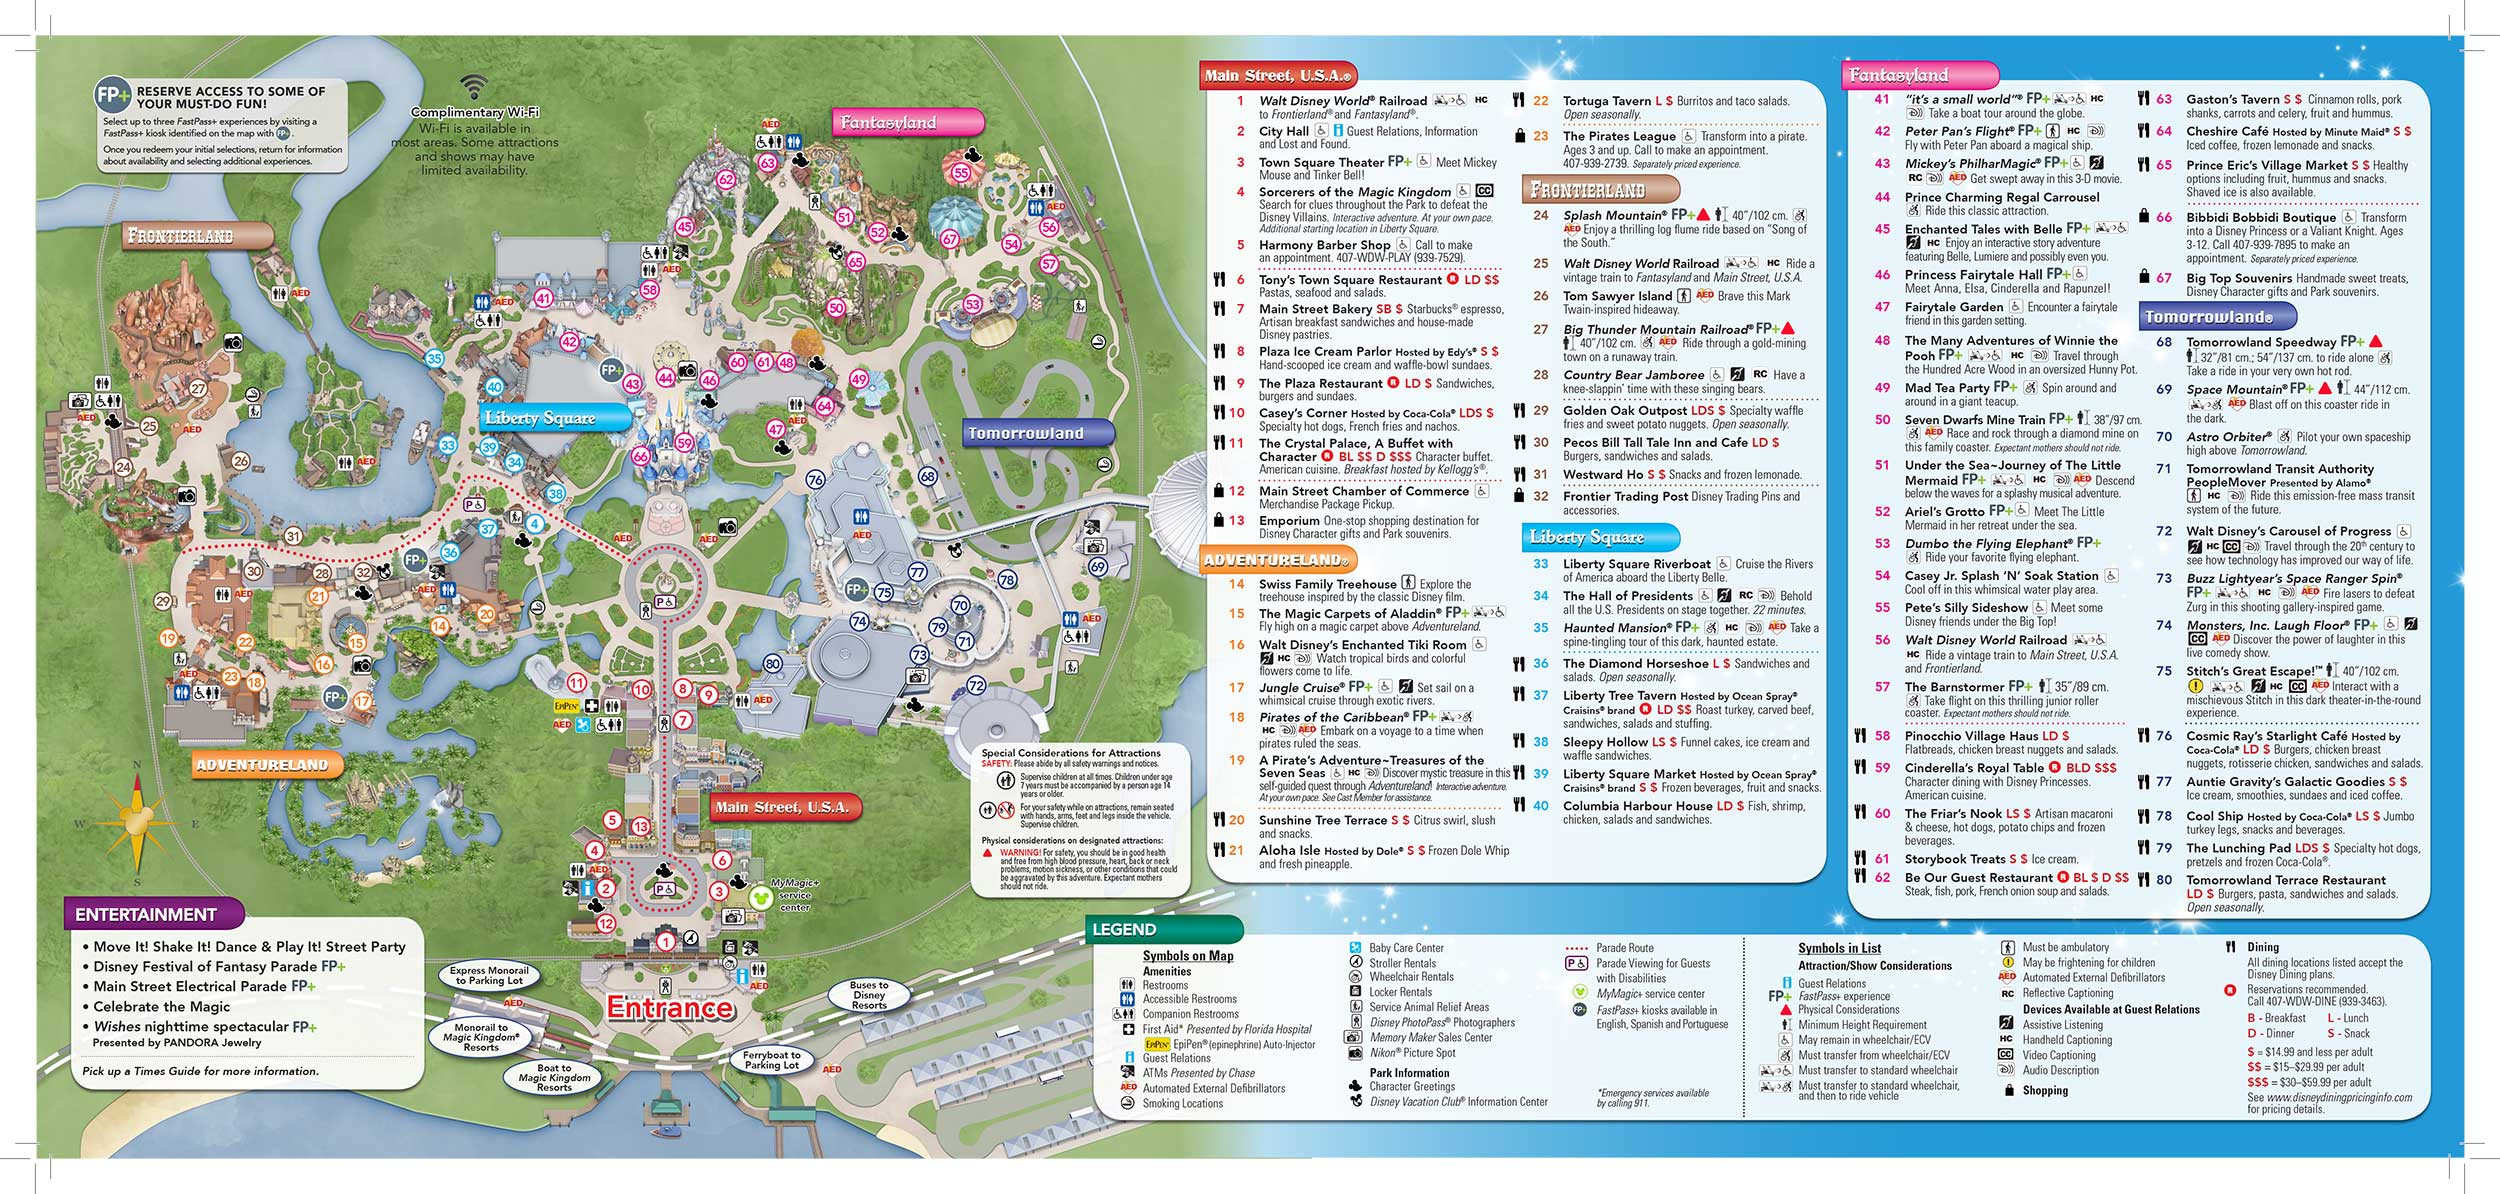 Printable Disney Map 2018 Lovely Map Disney World Mousehints At Printable Scrapsofme Me Within